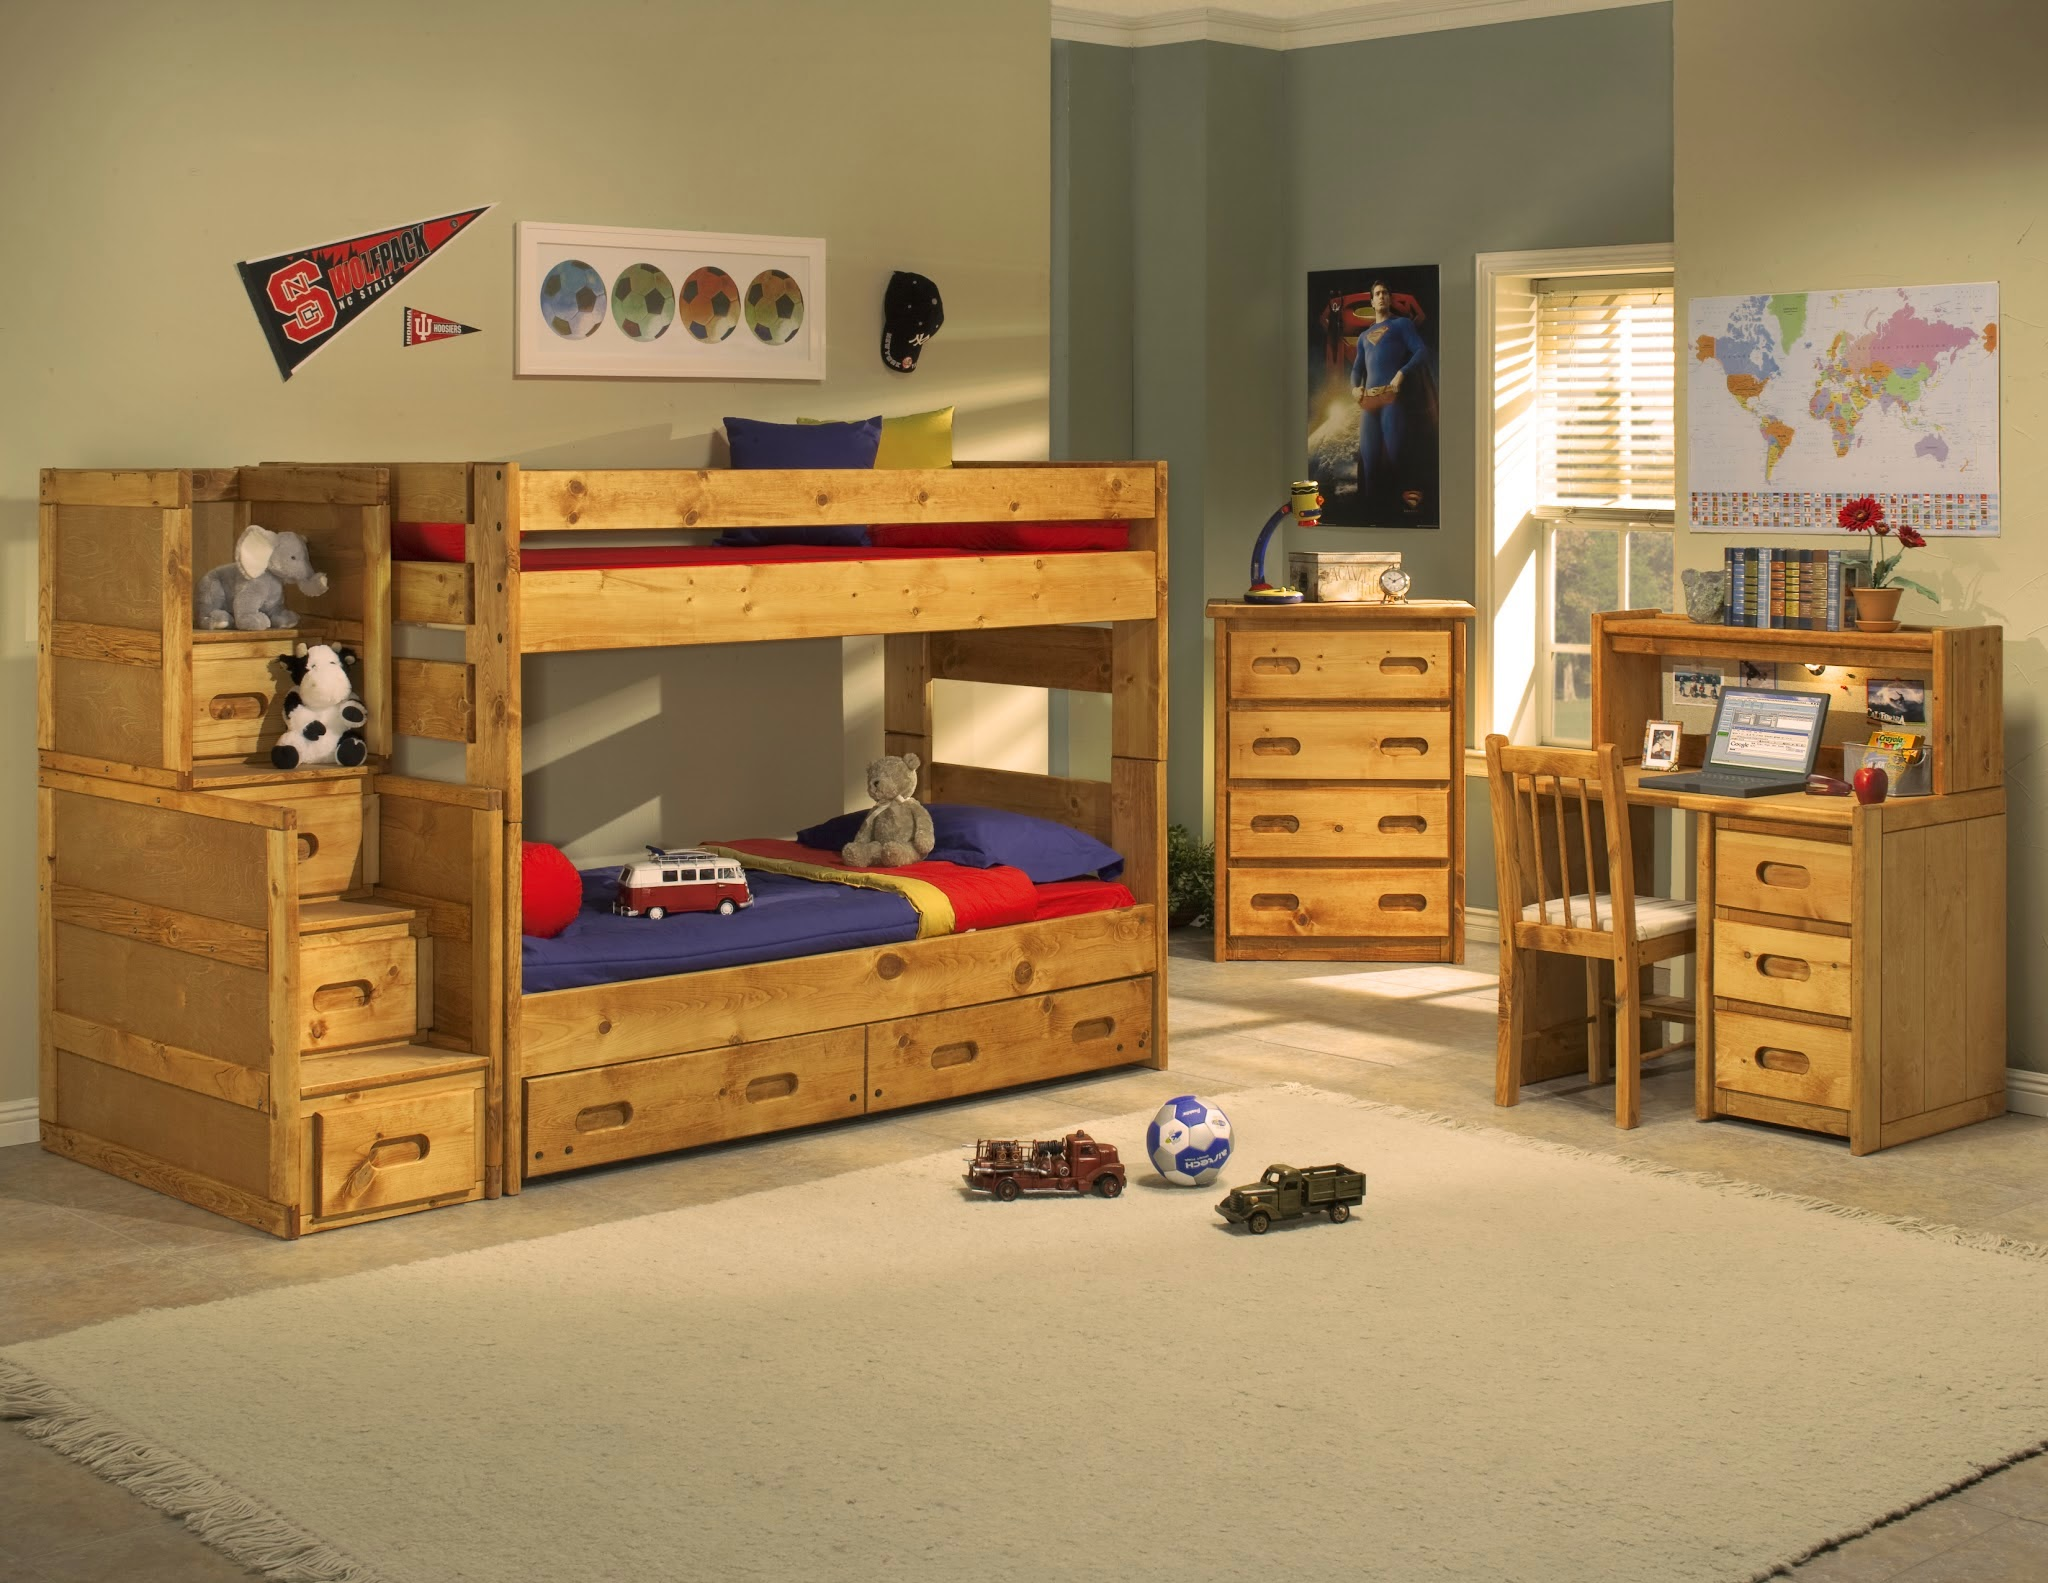 Perfect Solid Pine Bunk Beds and Bedroom Sets by Rustic Classics The solid pine bunk